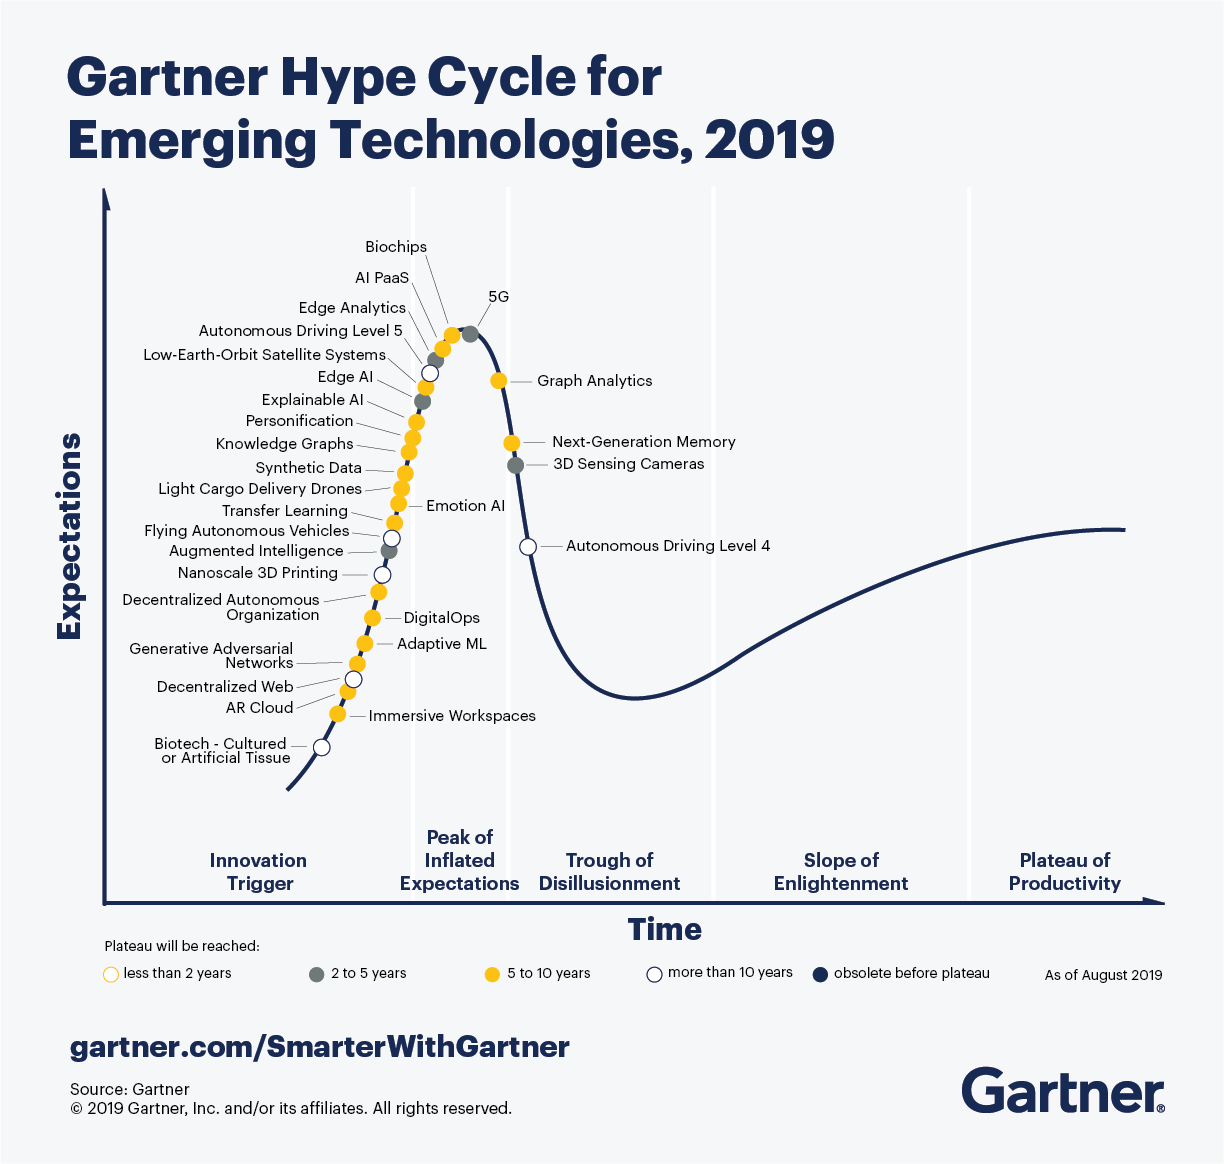 Gartner 2019 Hype Cycle for Emerging Technologies  What's in